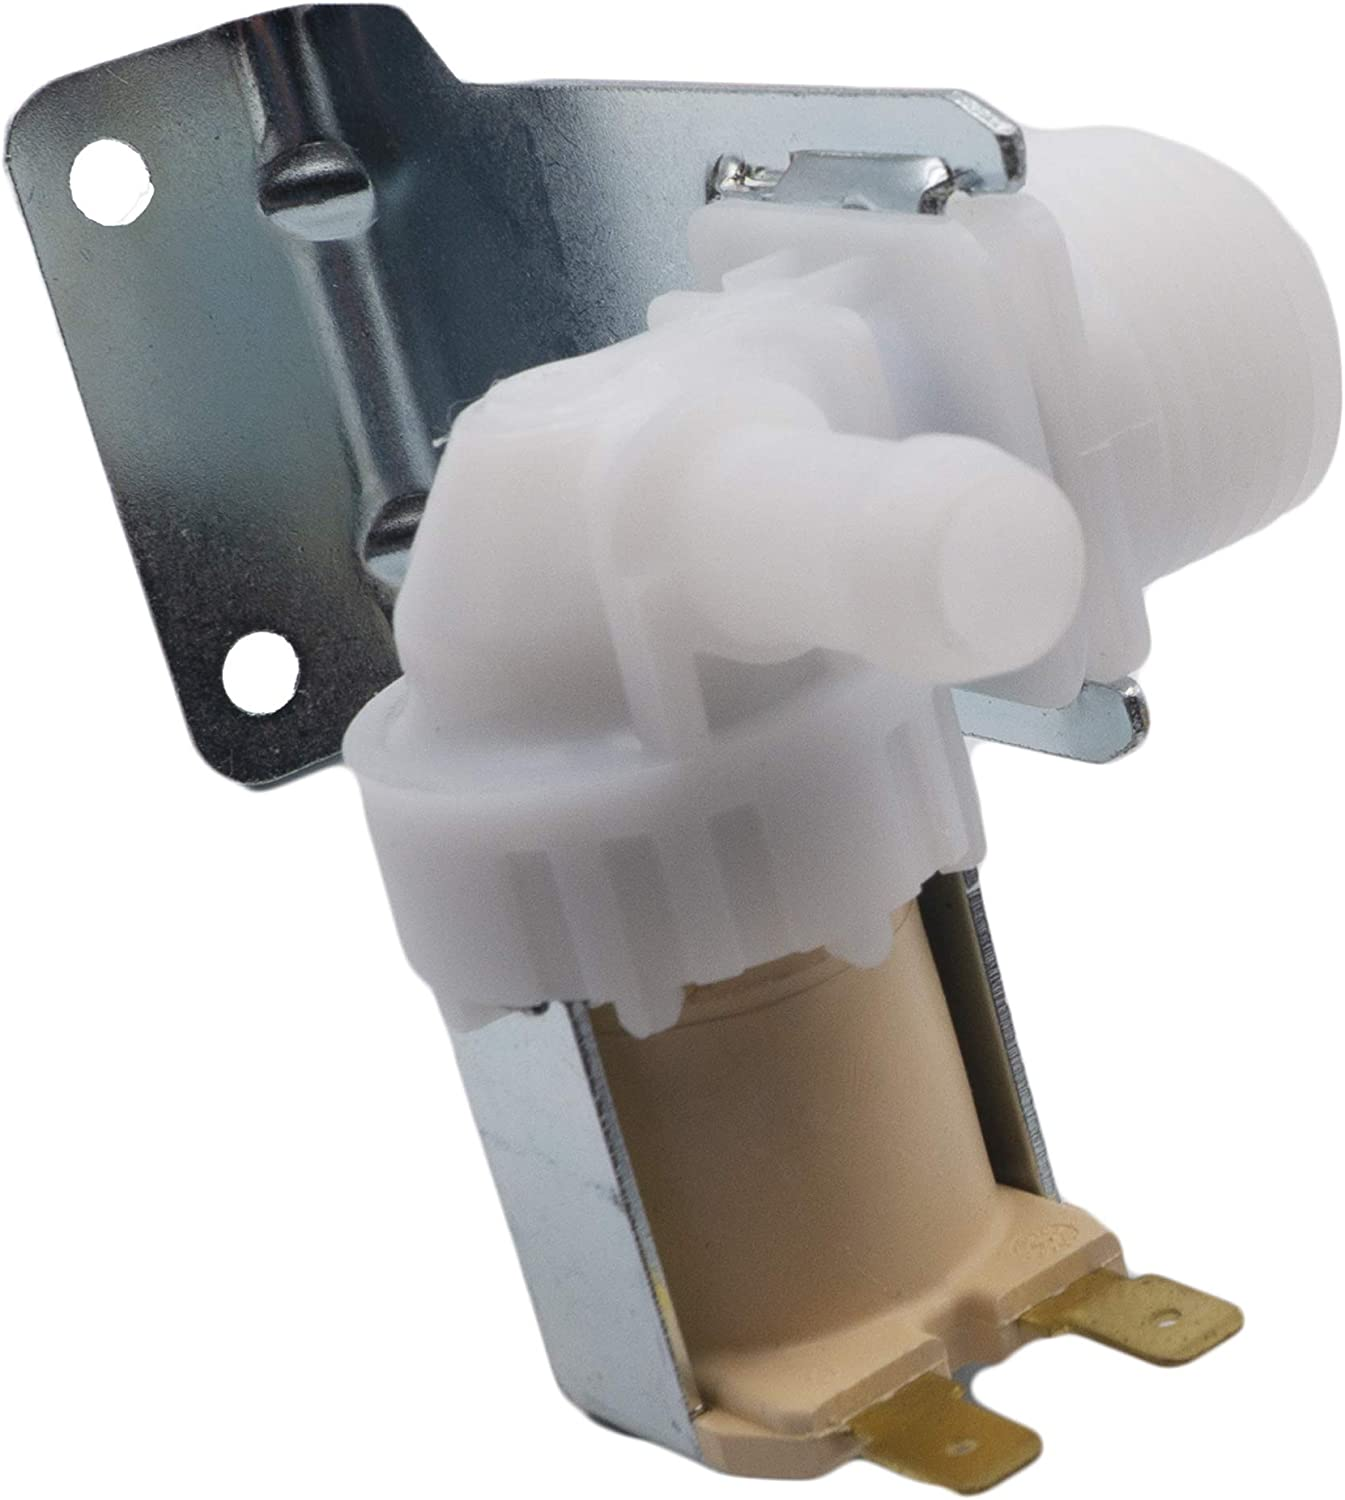 Supplying Demand 807047901 Dishwasher Water Inlet Valve Compatible With Frigidaire